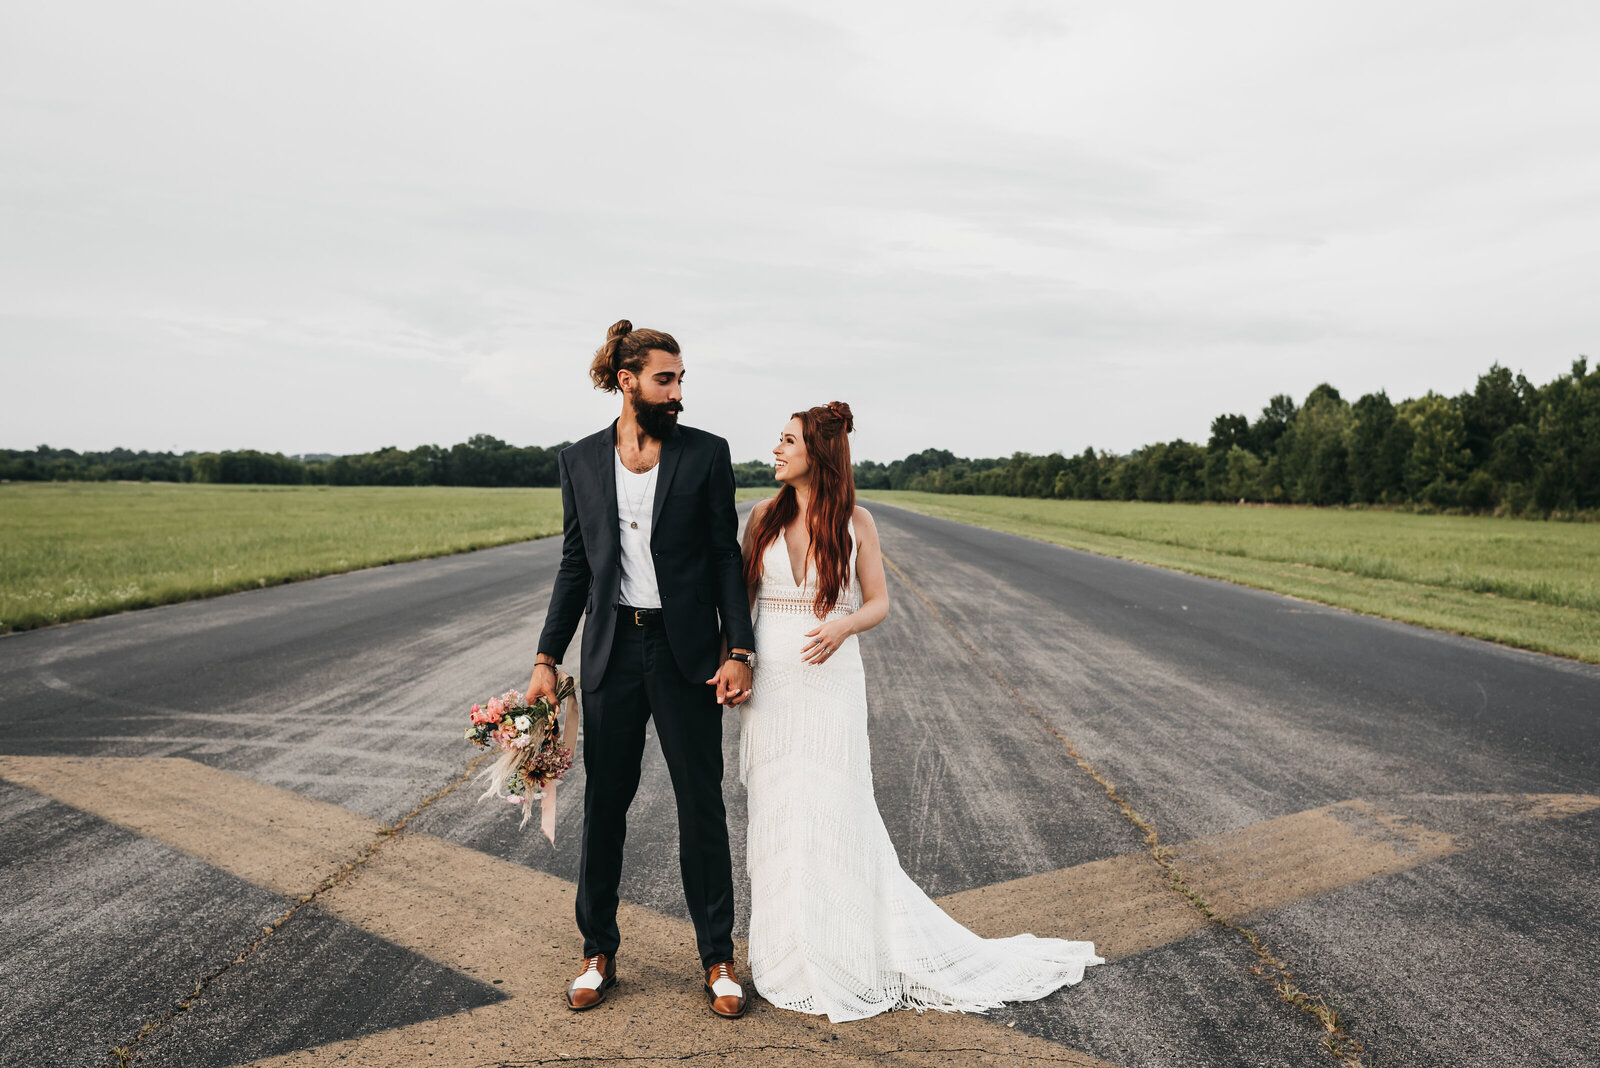 Daniel_Ruta_Cornelia_Fort_Airport_Nashville_Wedding_Photographer_Mariah_Oldacre_Sneaks-19